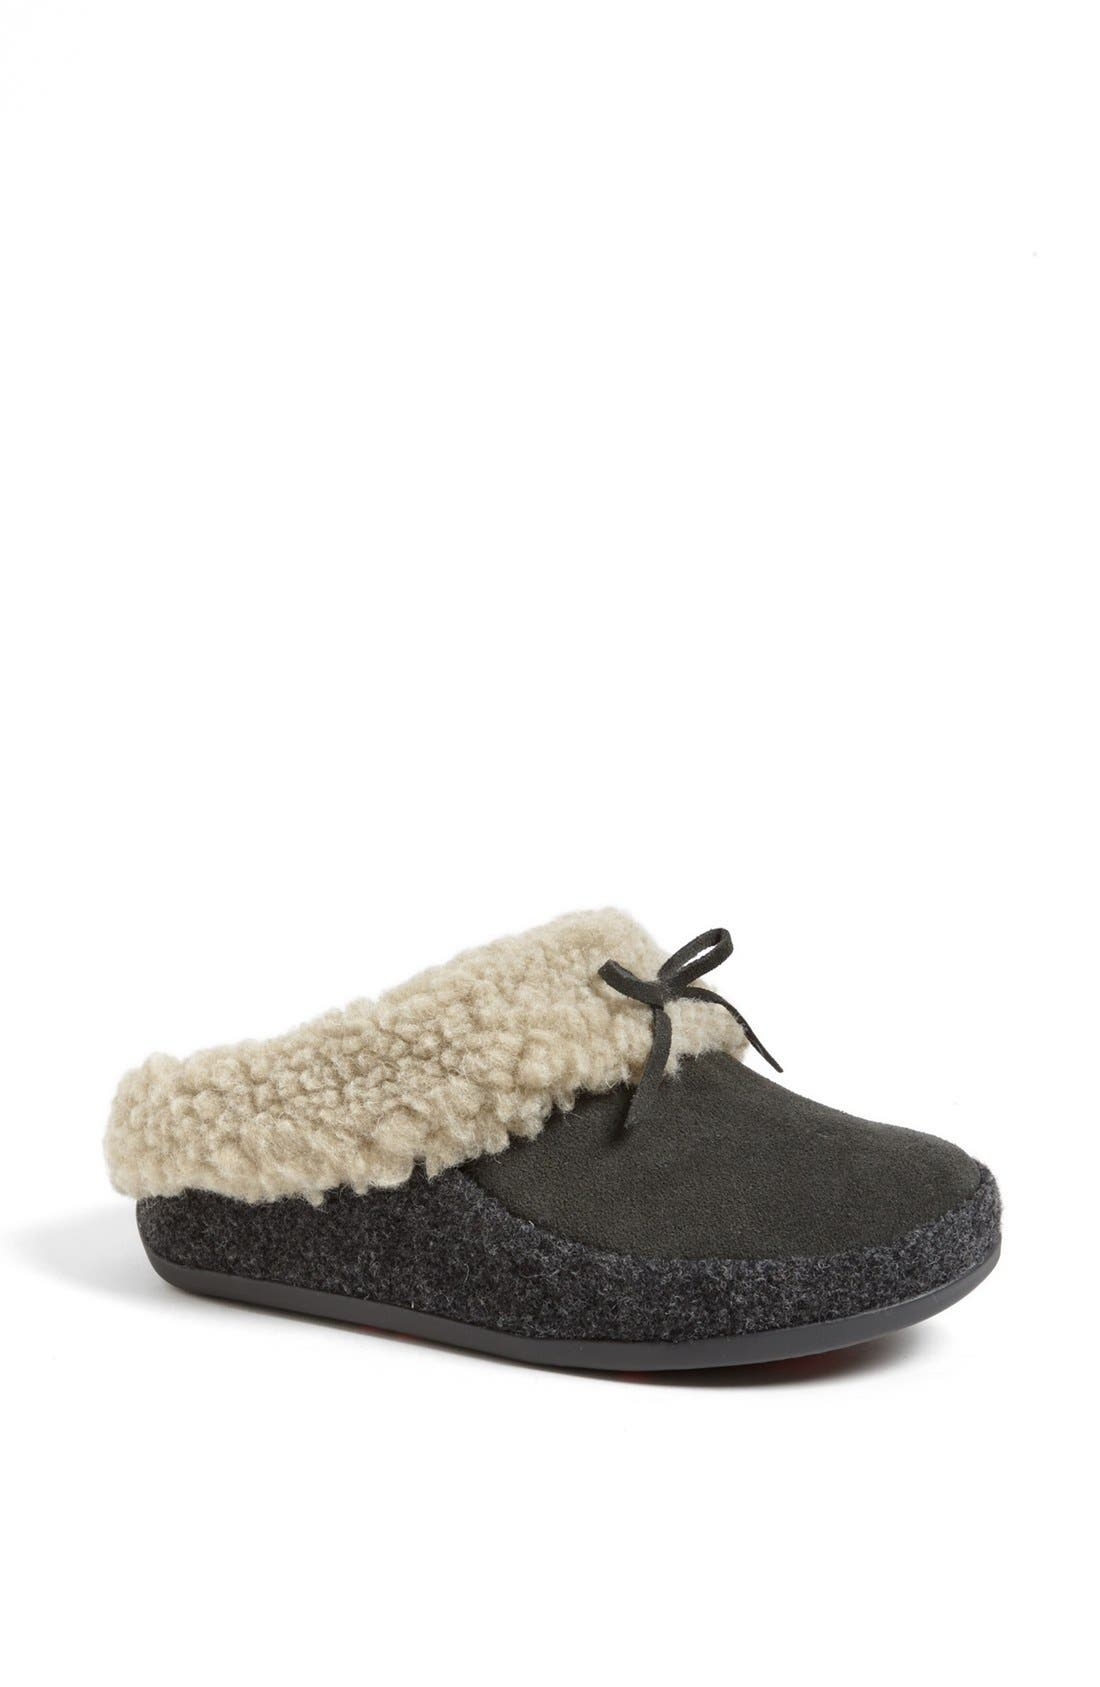 Alternate Image 1 Selected - FitFlop 'The Cuddler™' Slipper